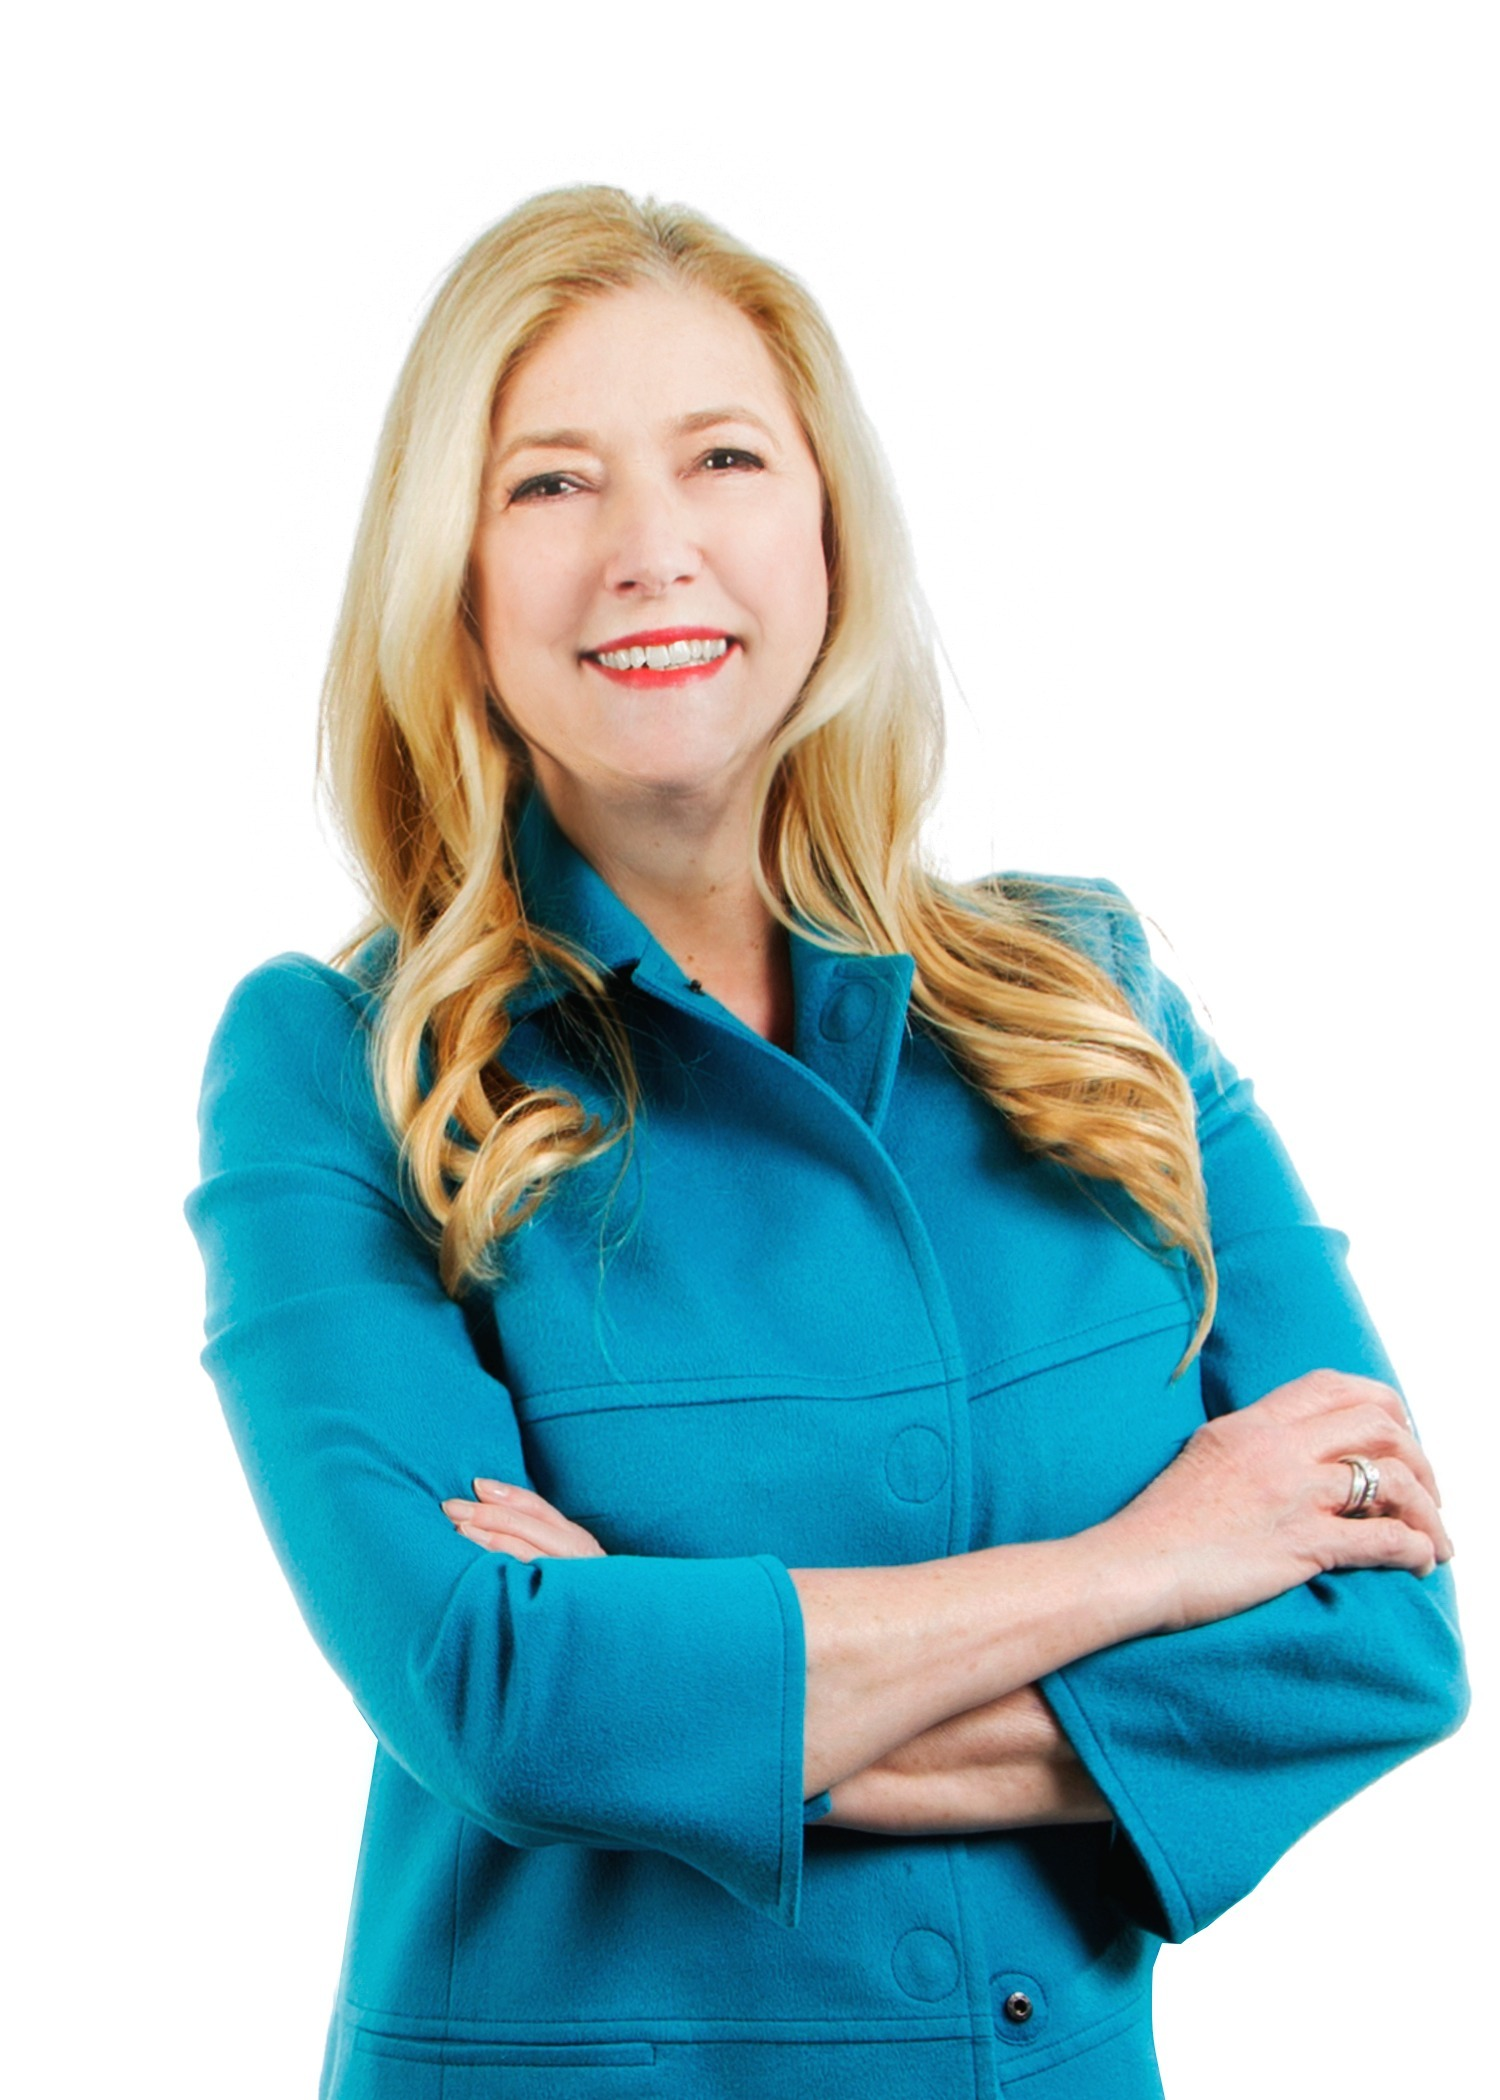 Gina Betts: Dorsey & Whitney LLP announced today that it has opened an office in Dallas, Texas. The lawyers establishing Dorsey's Dallas office include Larry Makel, Stan Mayo, Gina Betts, Jason DuVall and Jamie Whatley. (Photo: Dorsey & Whitney LLP)